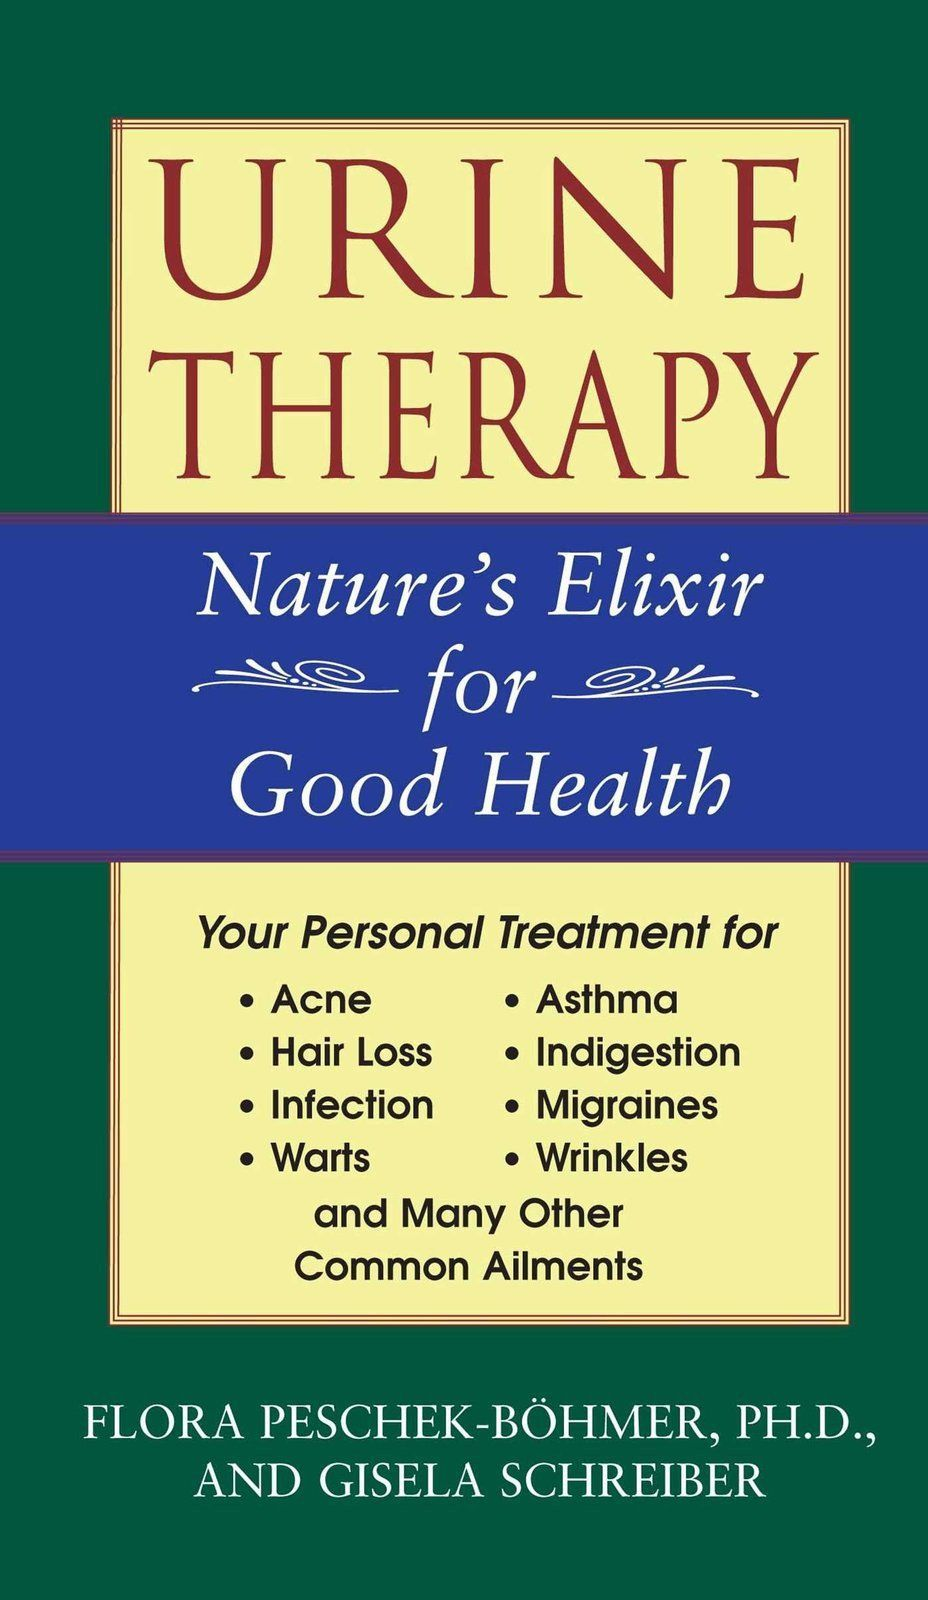 Urine Therapy Nature's Elixir for Good Health [Paperback